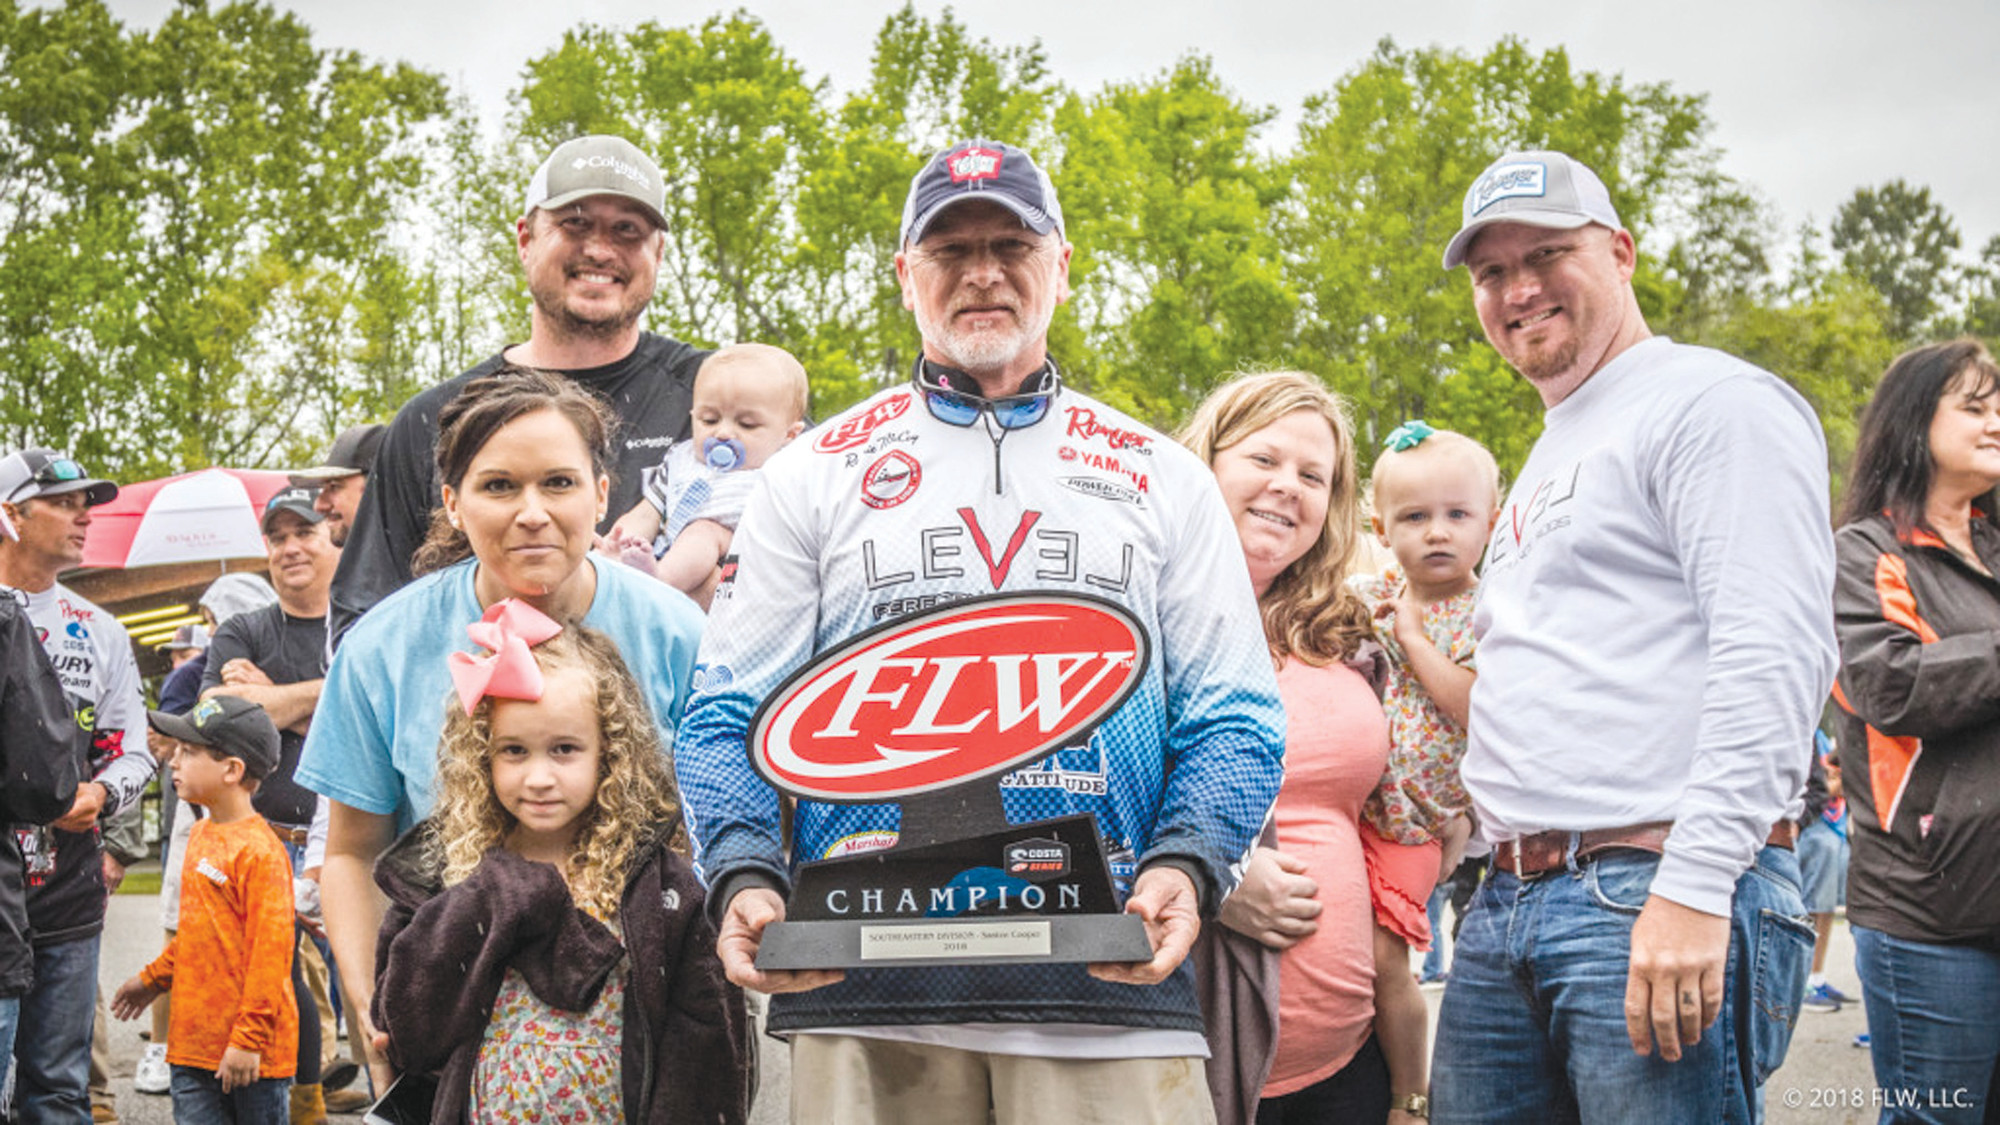 Tournament champion Ronnie McCoy won the Costa FLW Series Southeastern Division tournament.